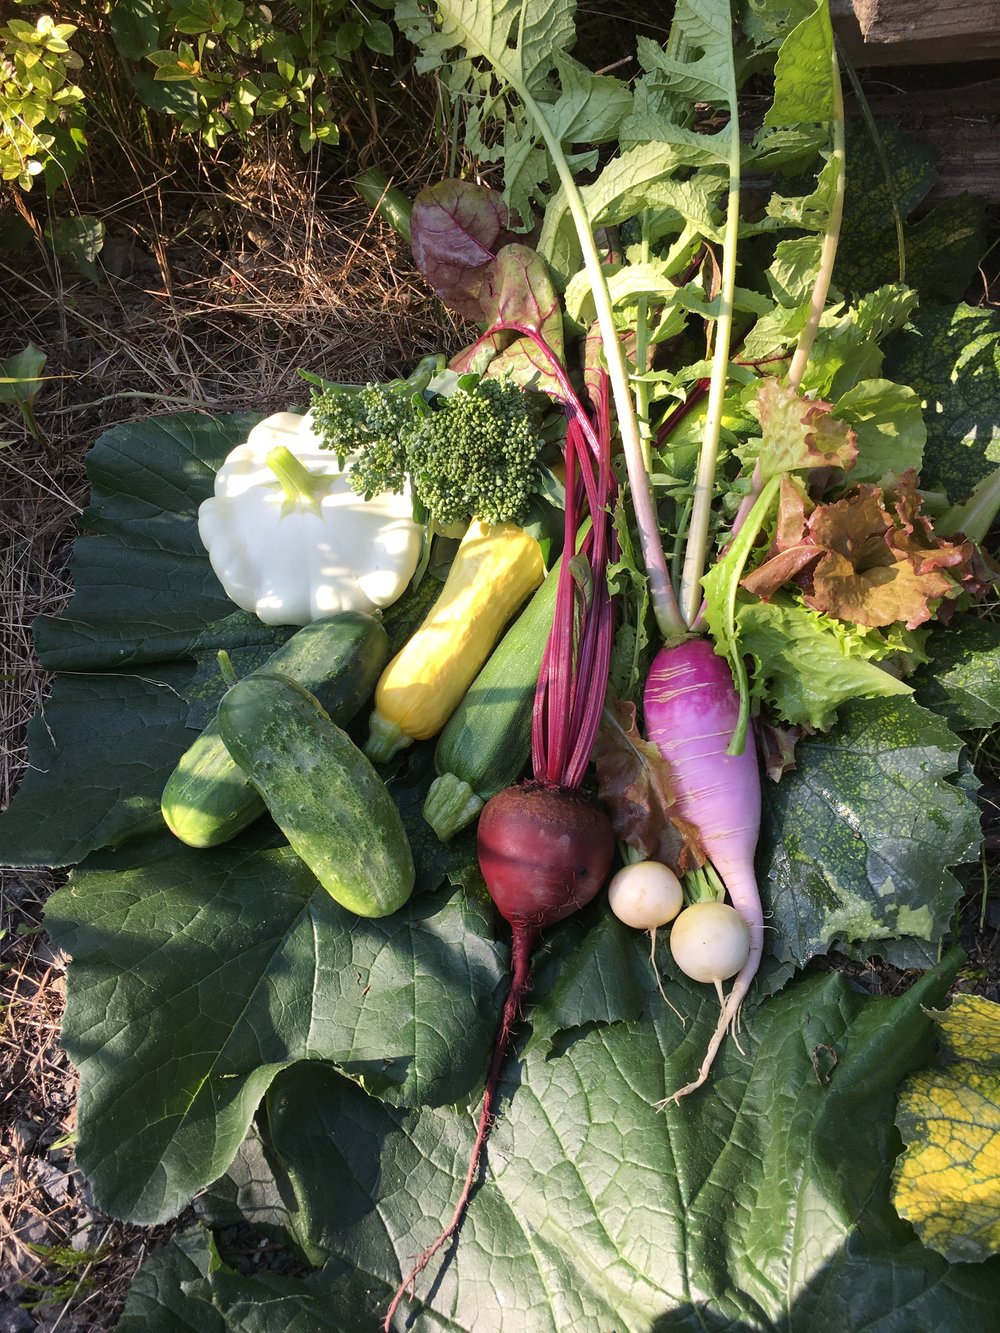 A photo from early July featuring some of our spring and summer vegetables. This image was captured by one of our great volunteers, Kya.